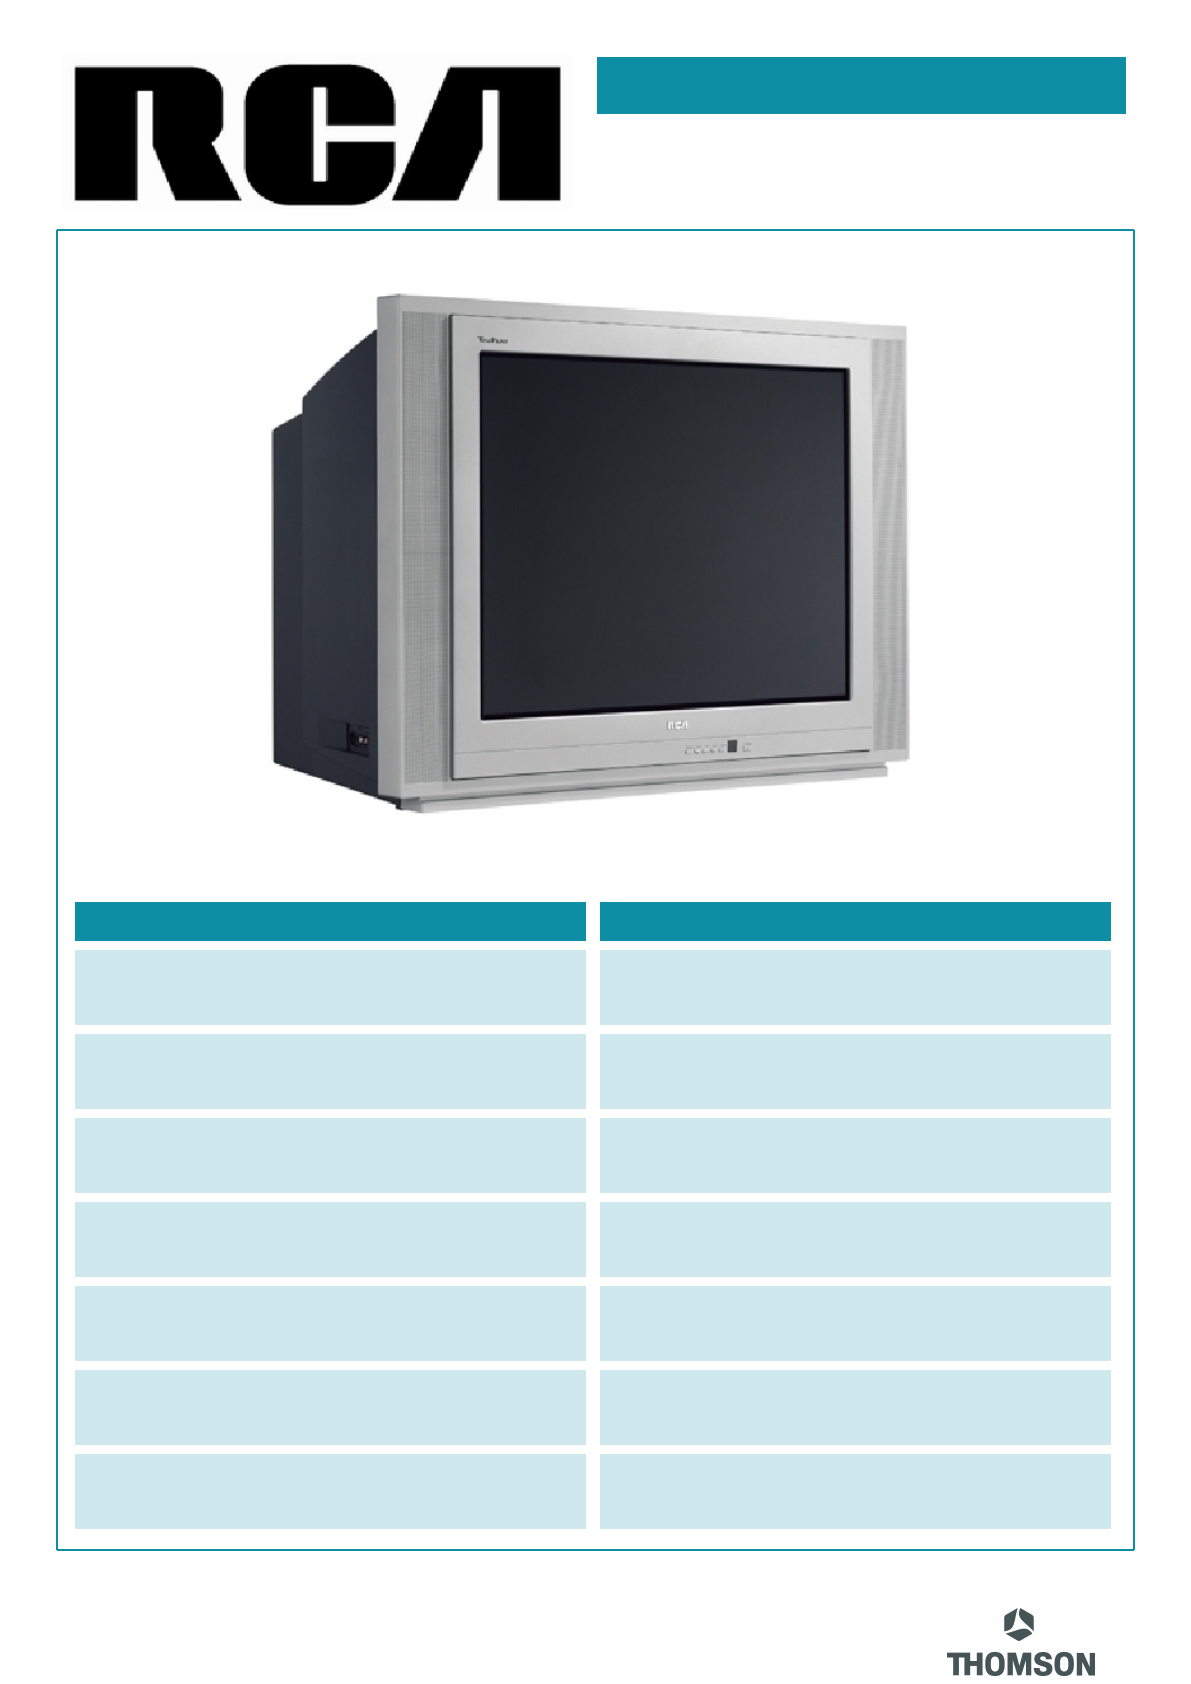 rca crt television 27f520t user guide manualsonline com rh tv manualsonline com RCA TV RCA TV